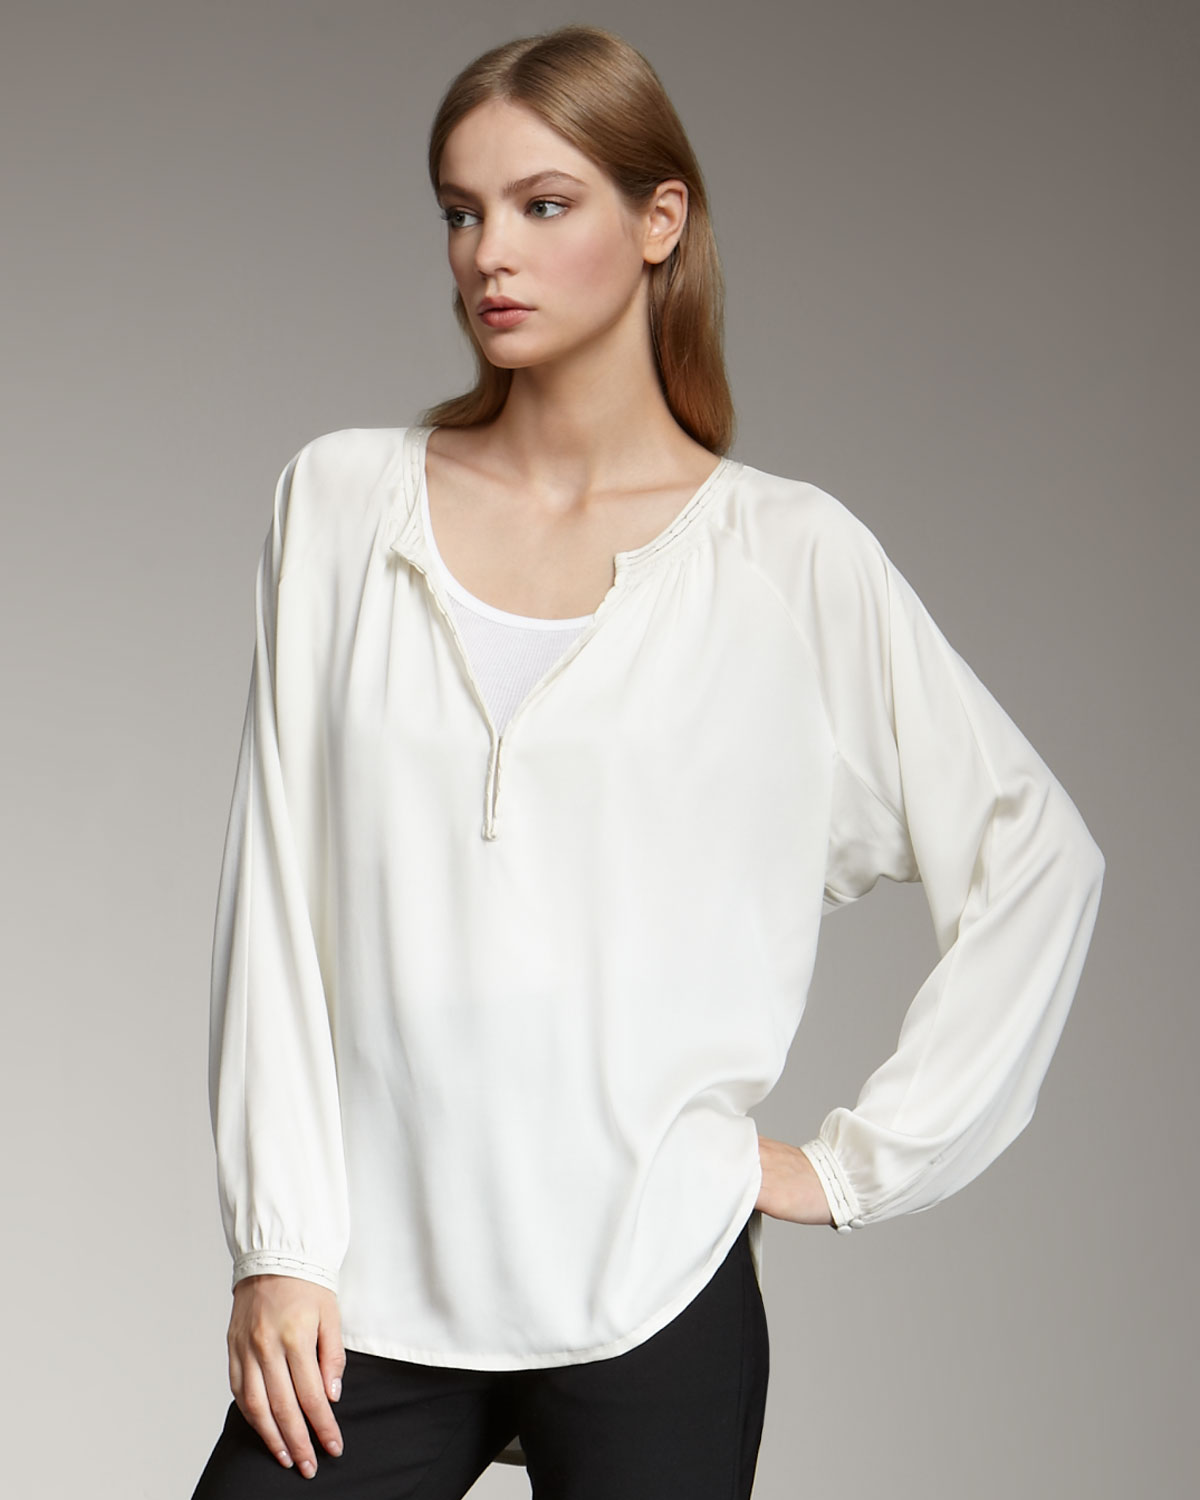 Shop womens blouses cheap sale online, you can buy white off shoulder blouses, black long sleeve blouses, silk blouses and lace blouses for women at wholesale prices on al9mg7p1yos.gq FREE shipping available worldwide.